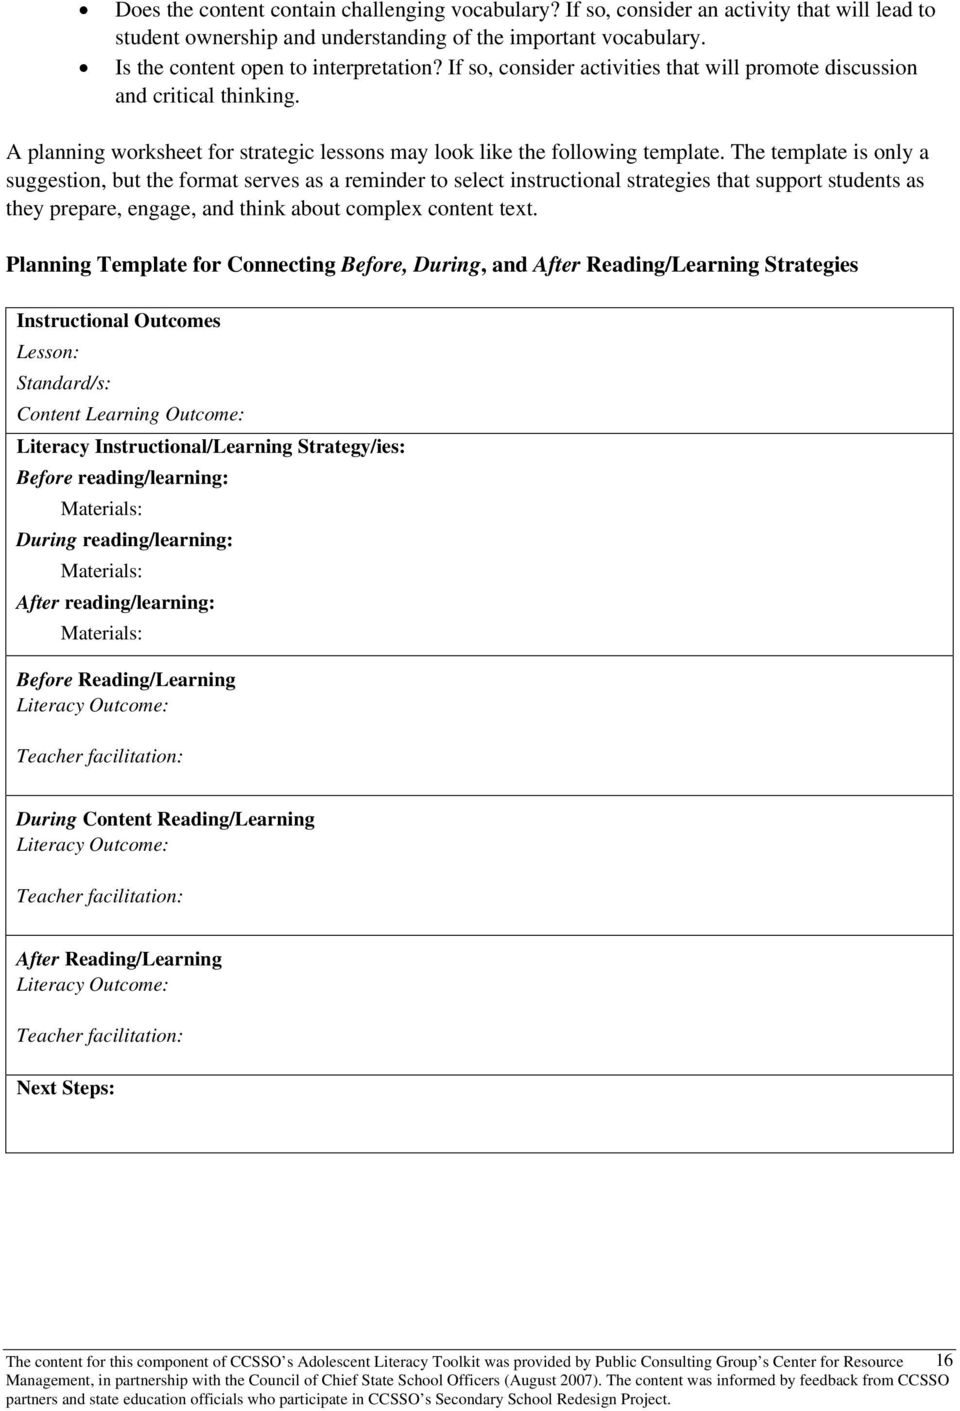 The template is only a suggestion, but the format serves as a reminder to select instructional strategies that support students as they prepare, engage, and think about complex content text.